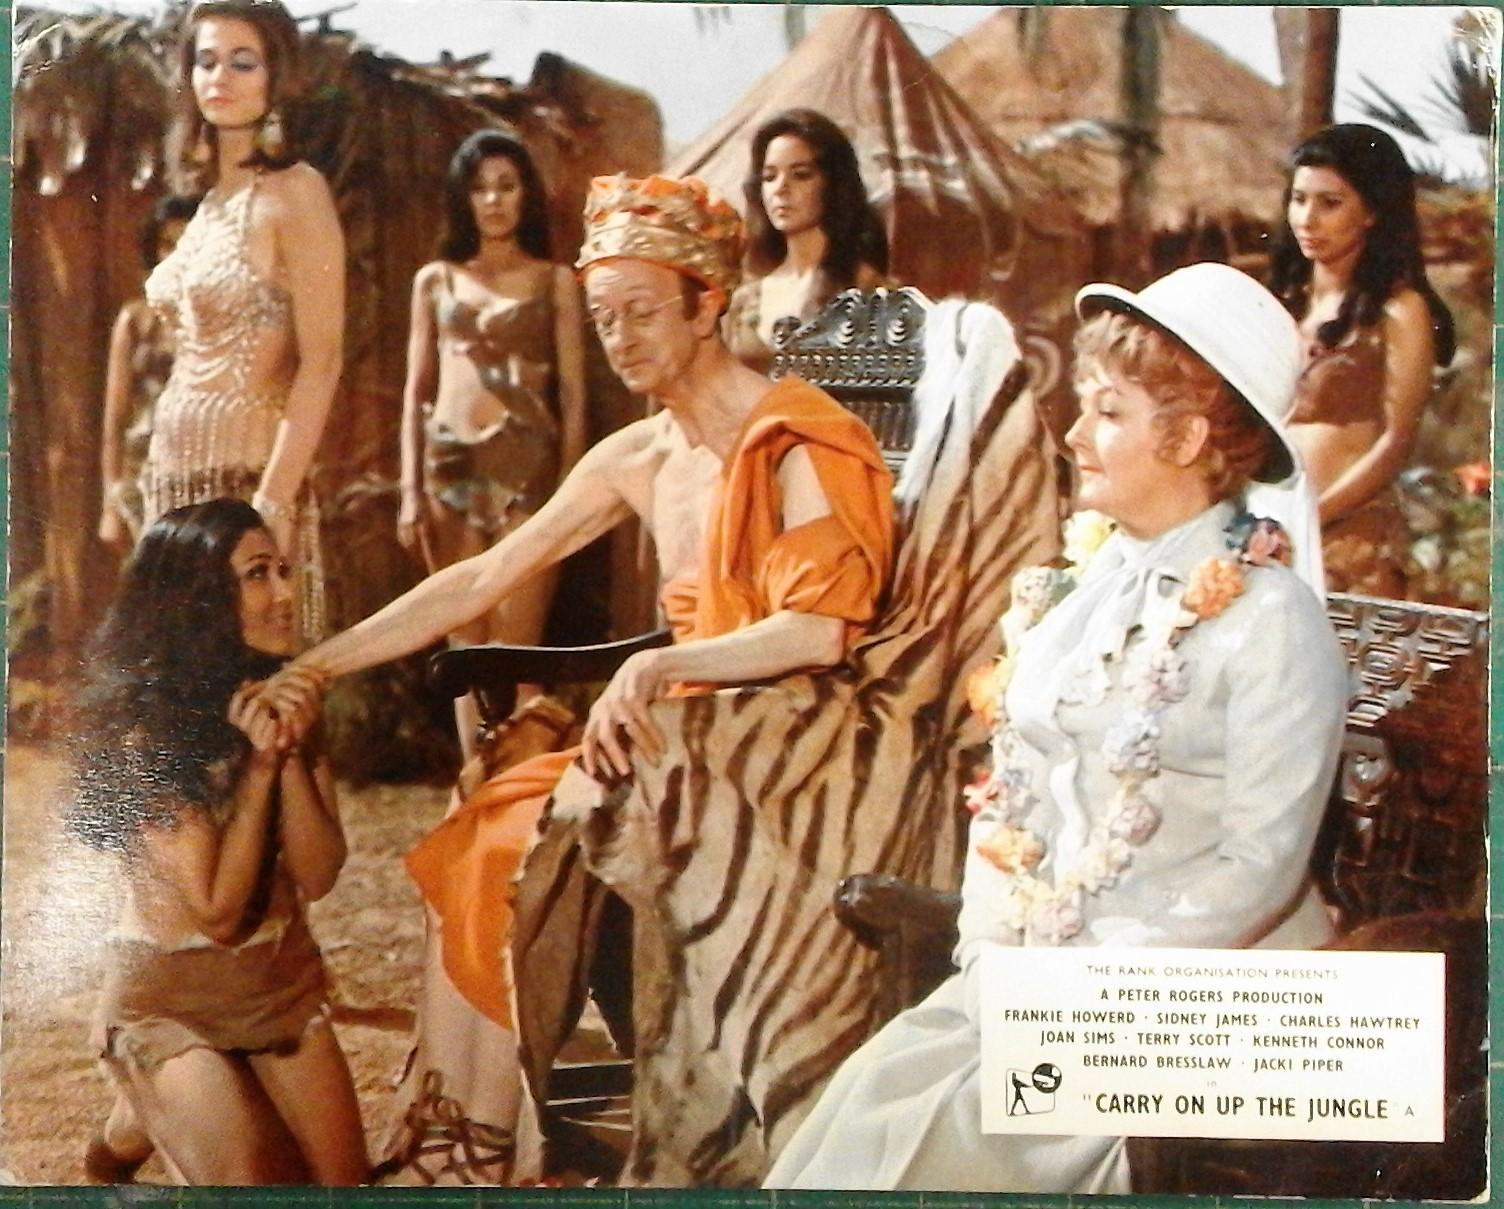 Joan Sims Nude carry on up the jungle', complete 8 film